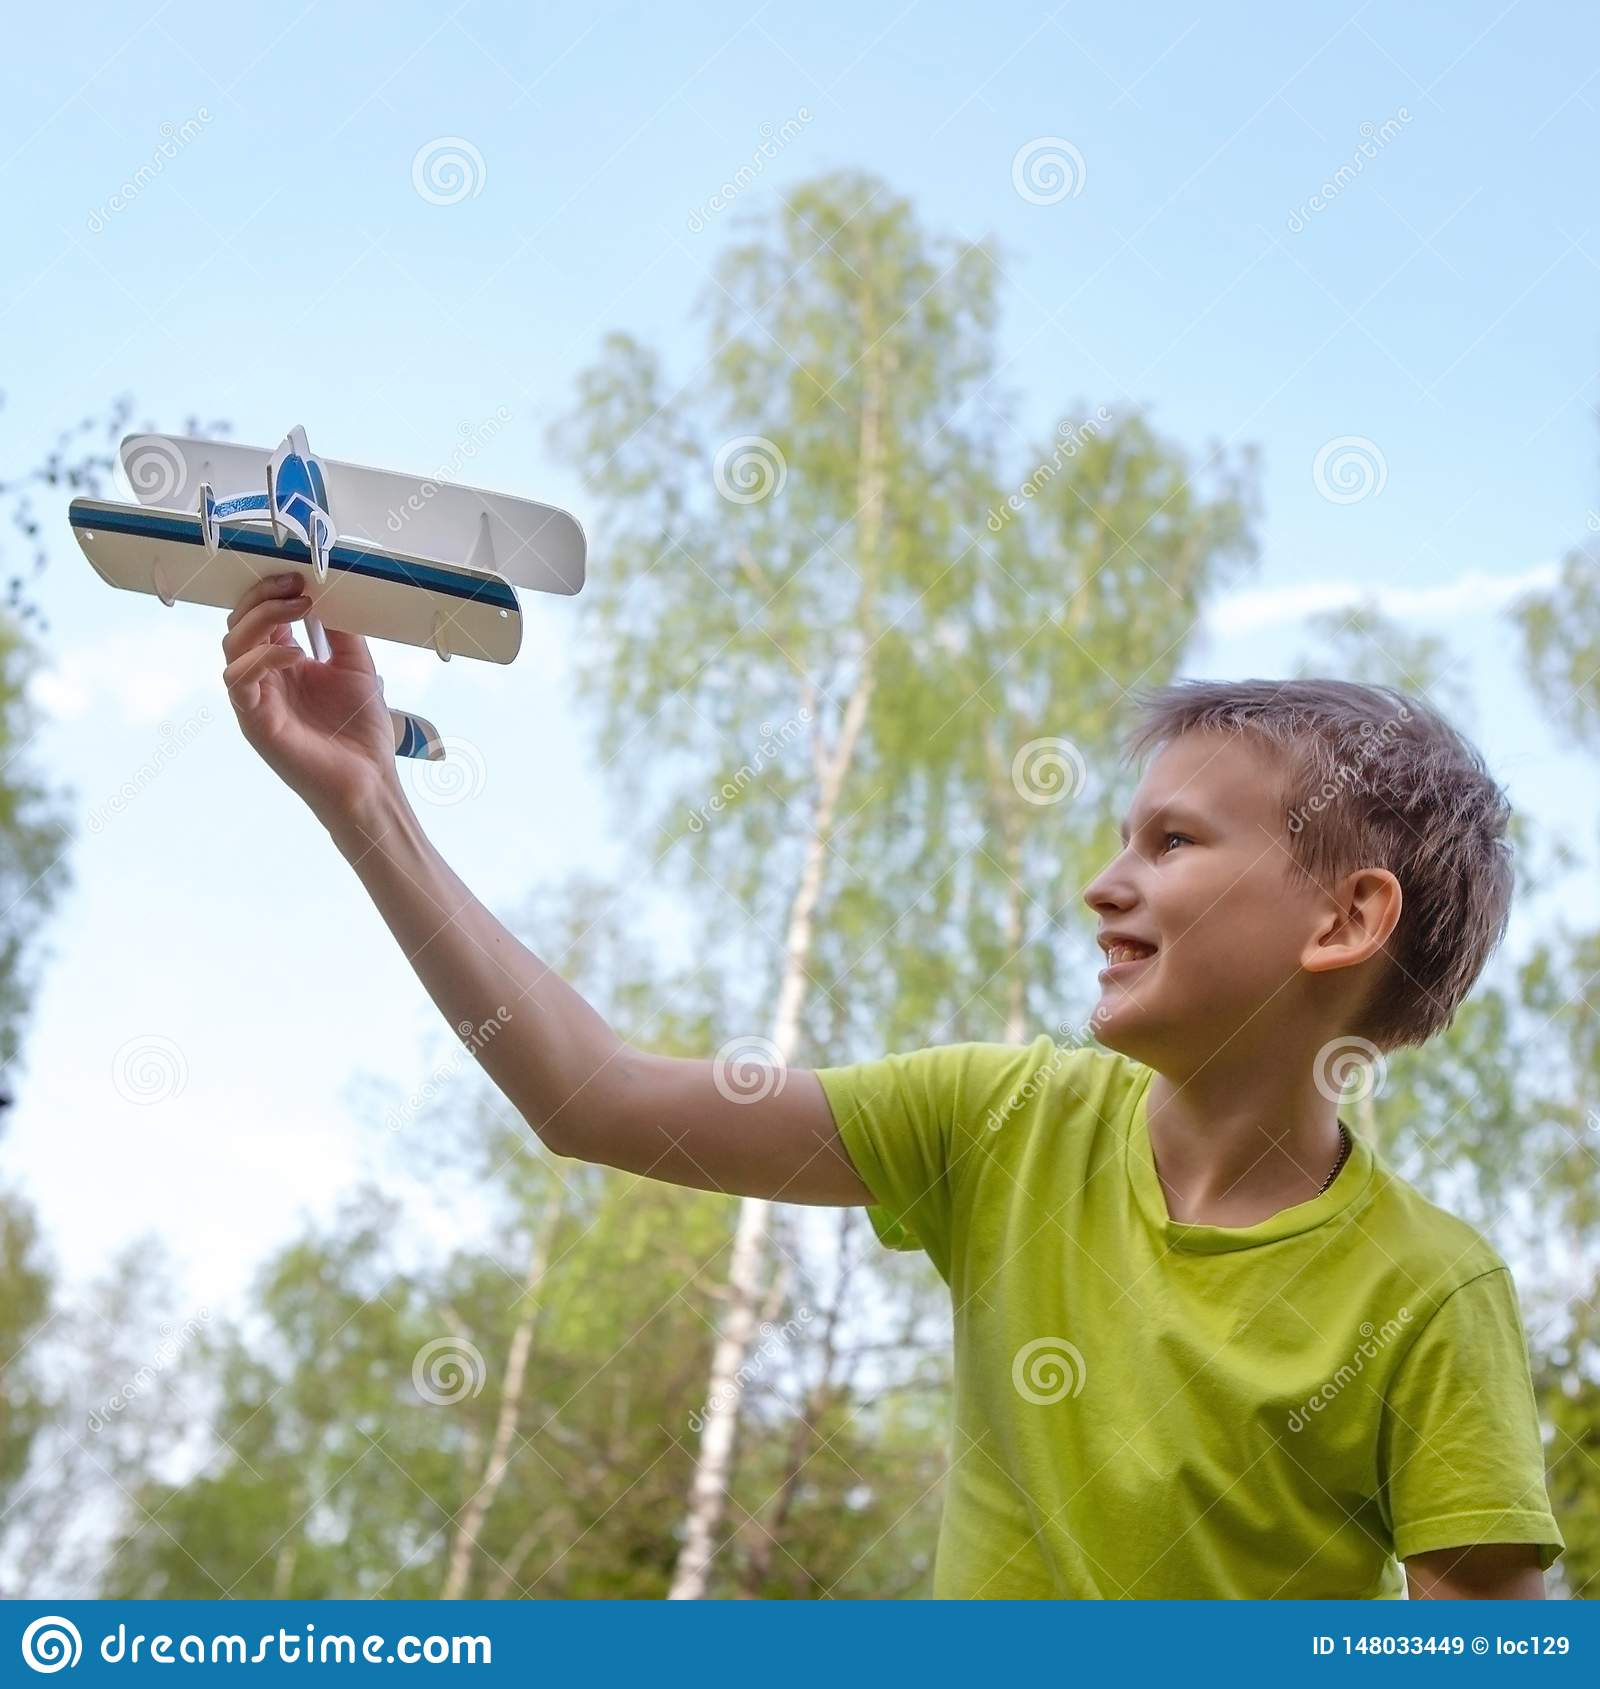 A boy of European appearance with an airplane against the sky with clouds. Bright emotions. Life style